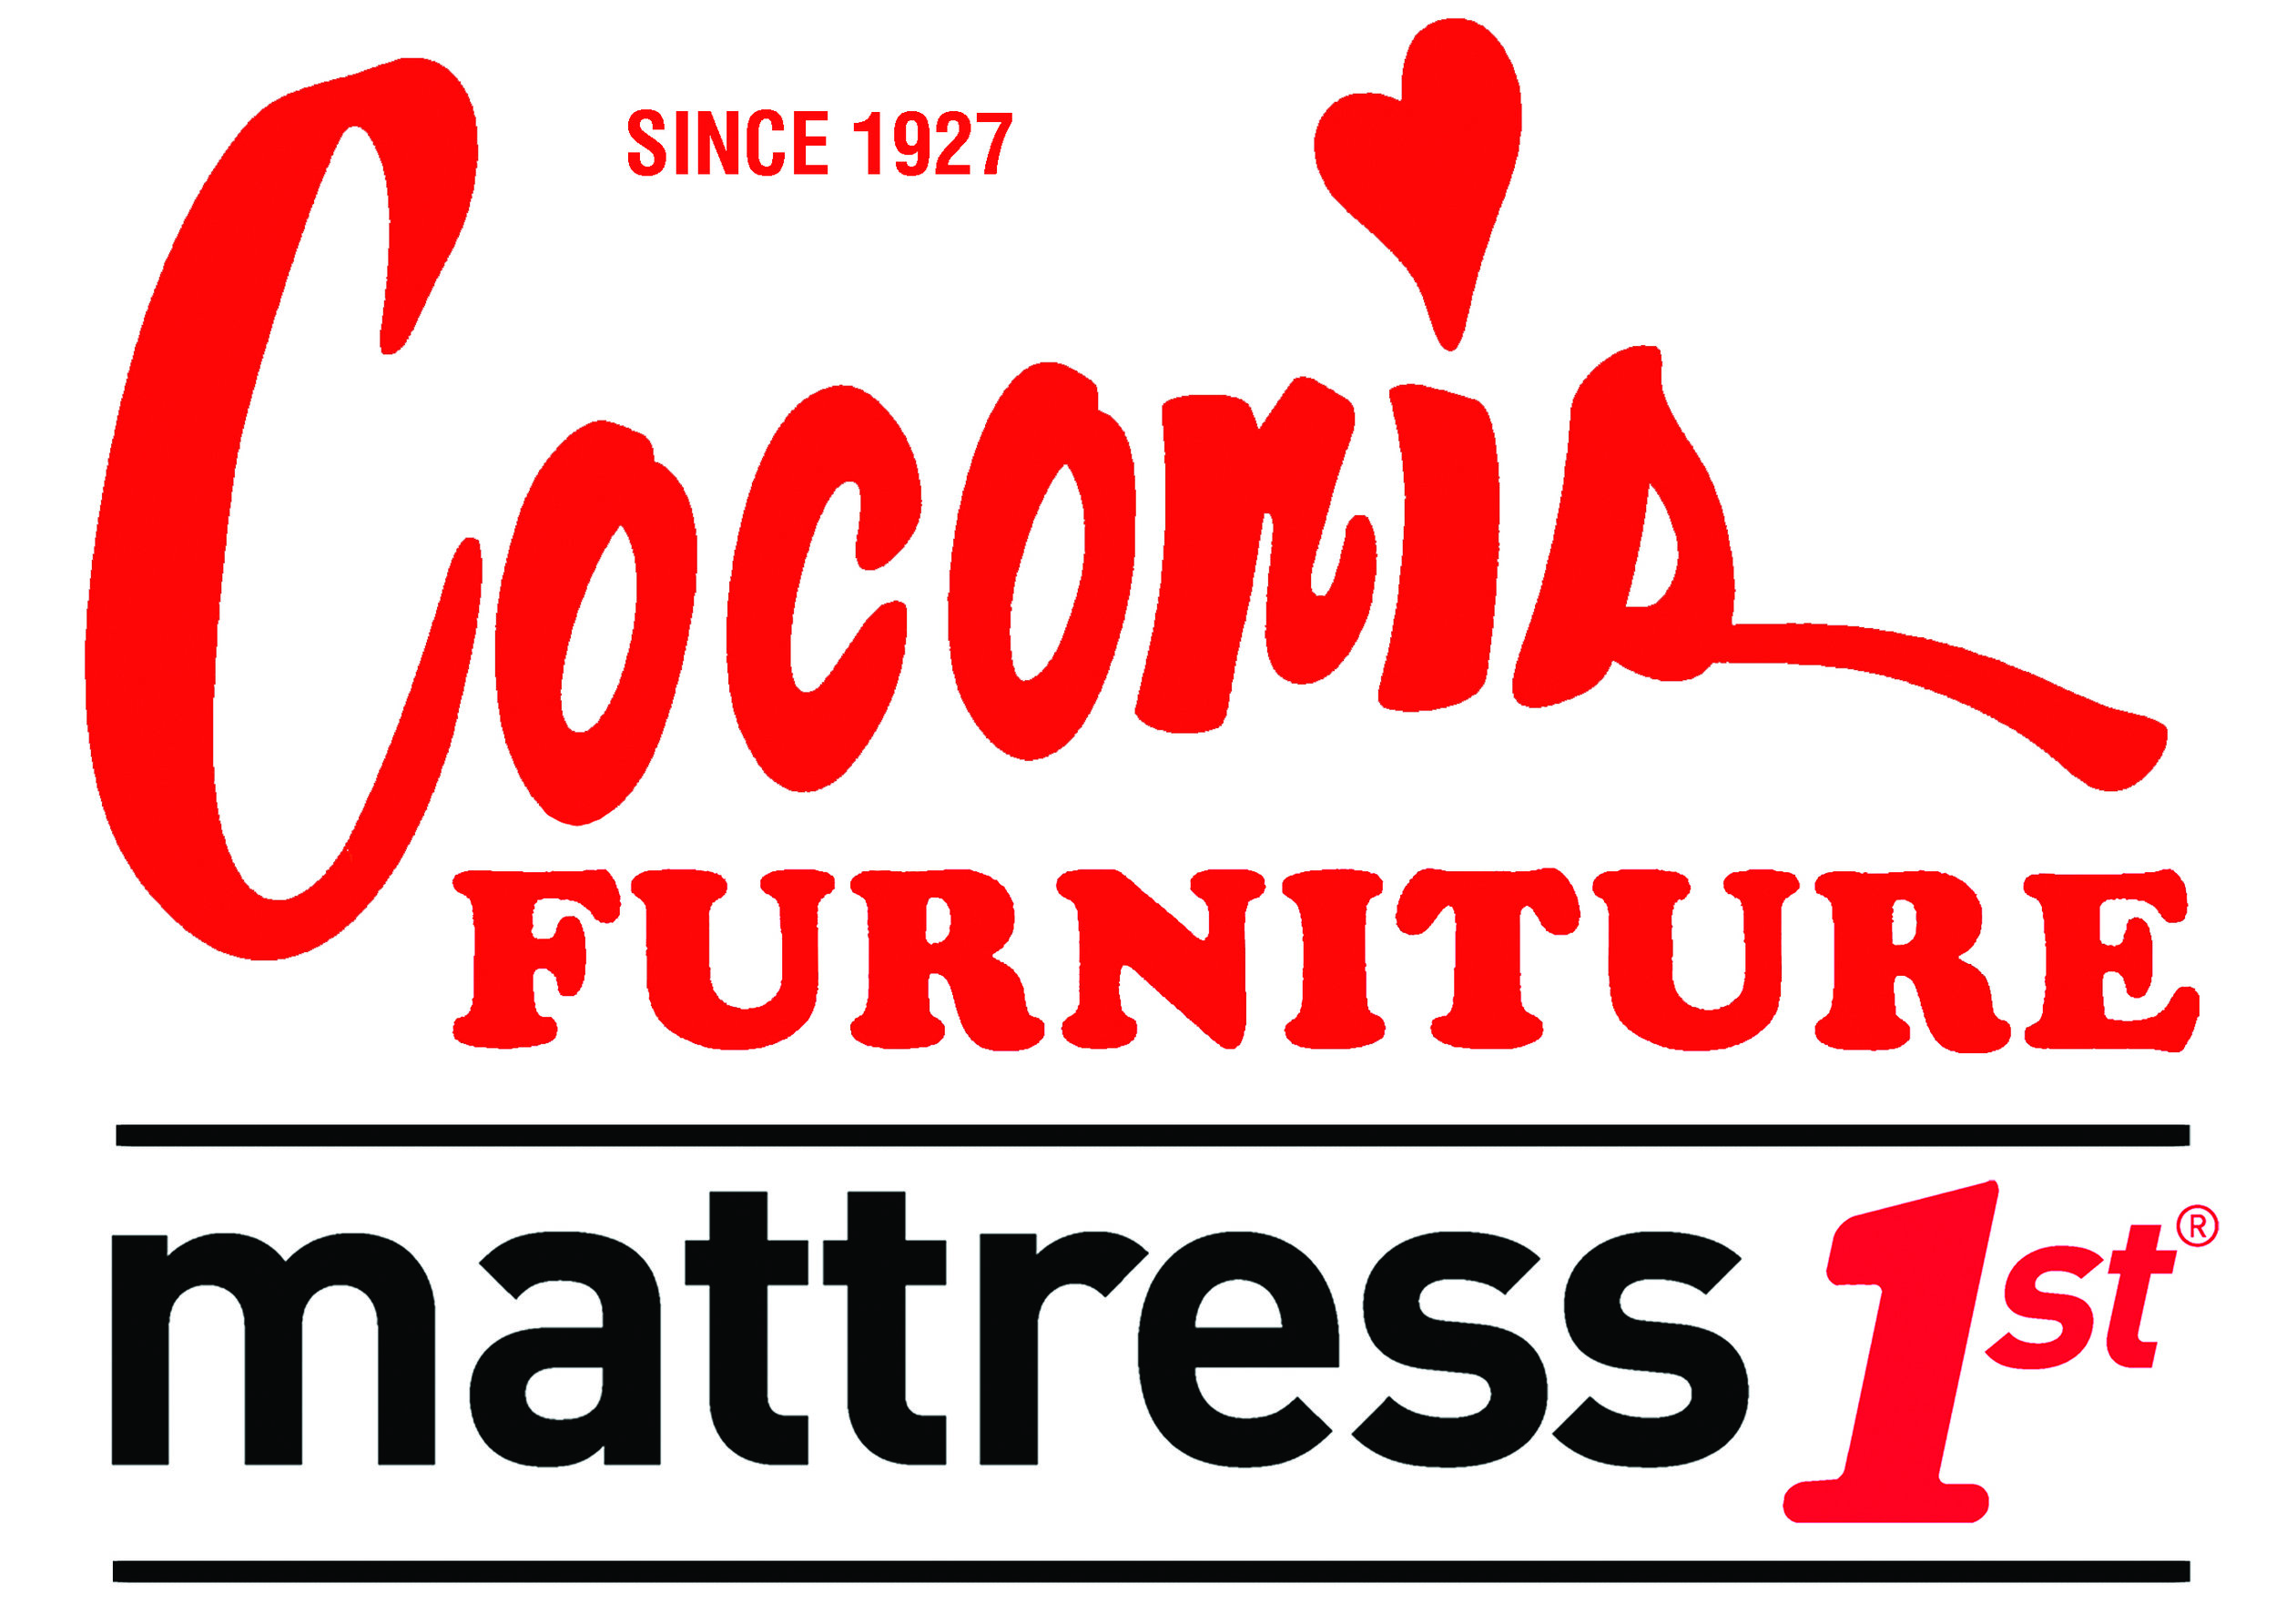 Coconis Furniture - Mattress 1st OFFICIAL logos in RED.jpg